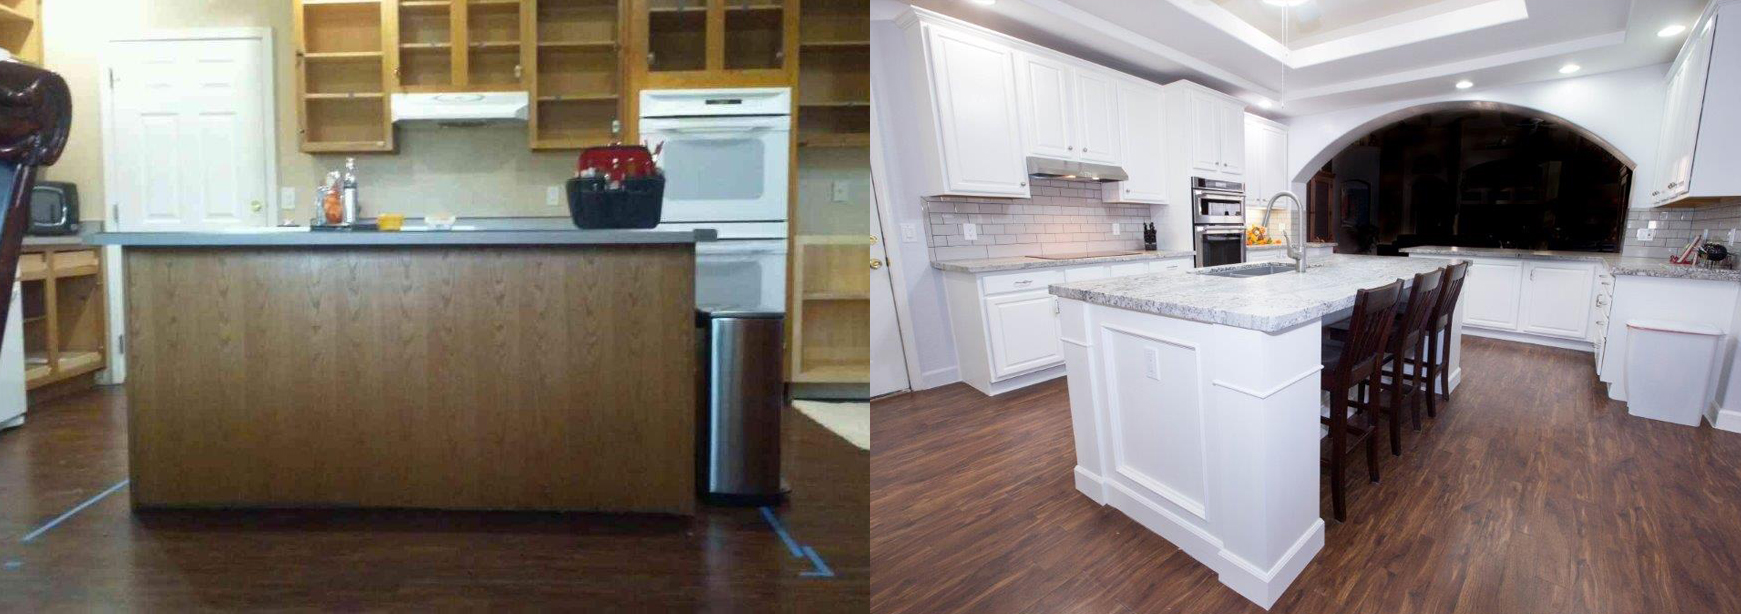 Cabinet Refinishing Phoenix AZ & Tempe Arizona | Kitchens, Bathrooms